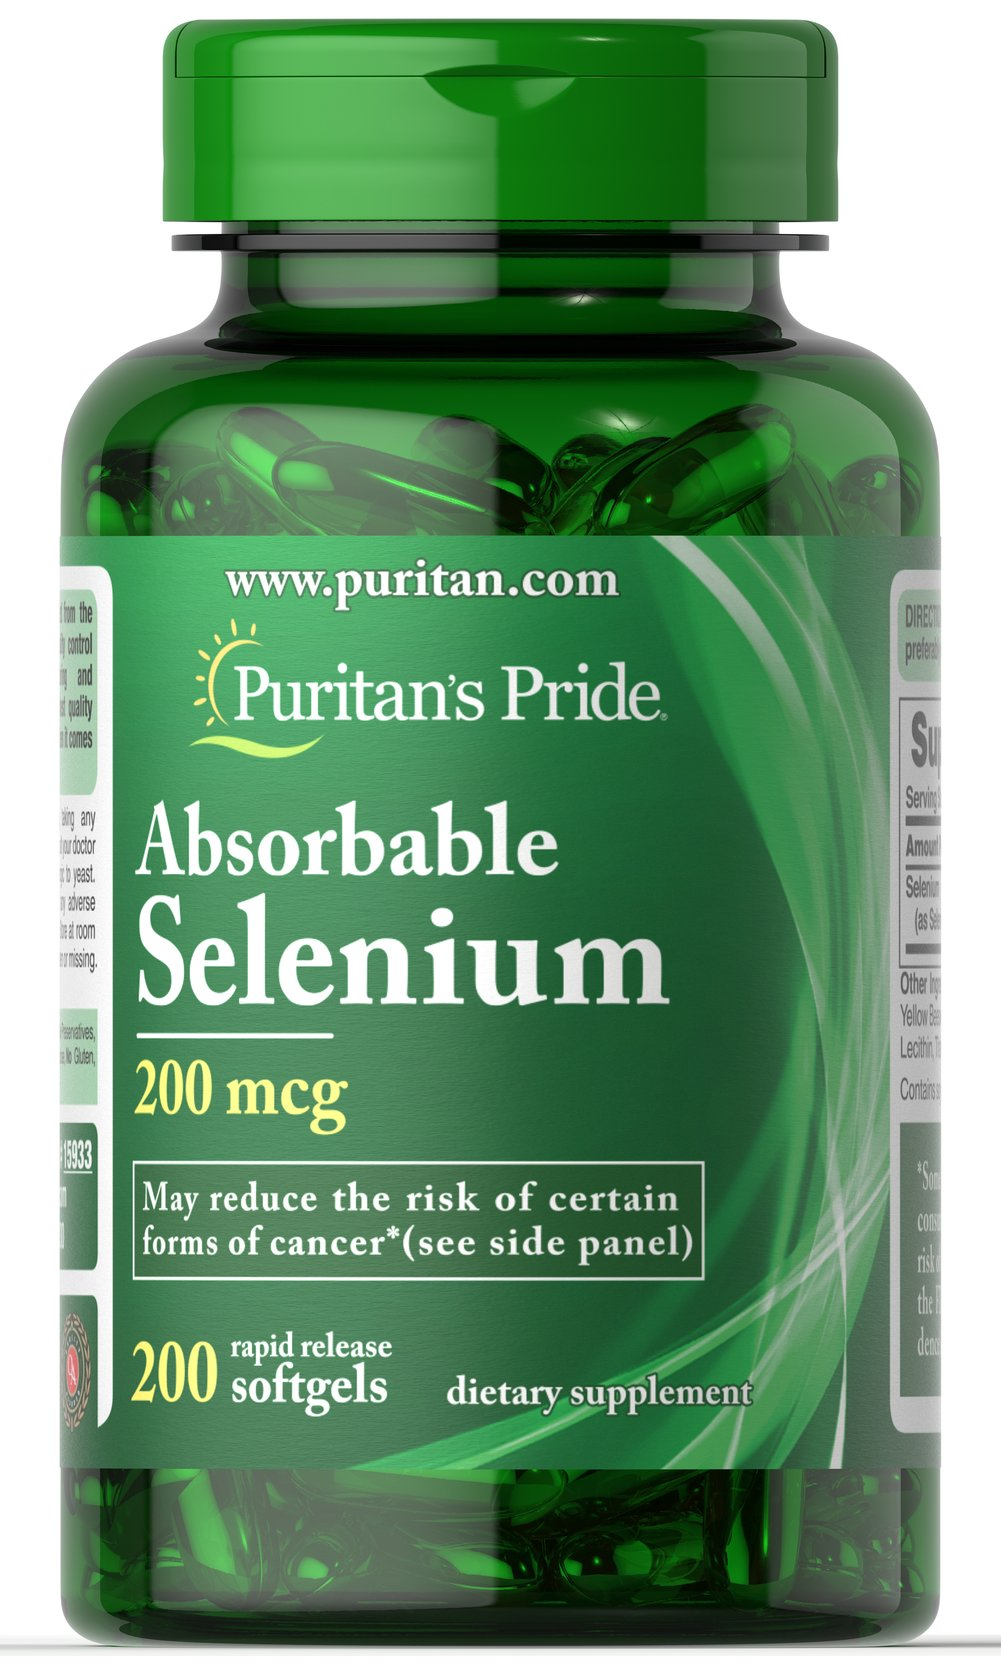 Absorbable Selenium 200 mcg Thumbnail Alternate Bottle View